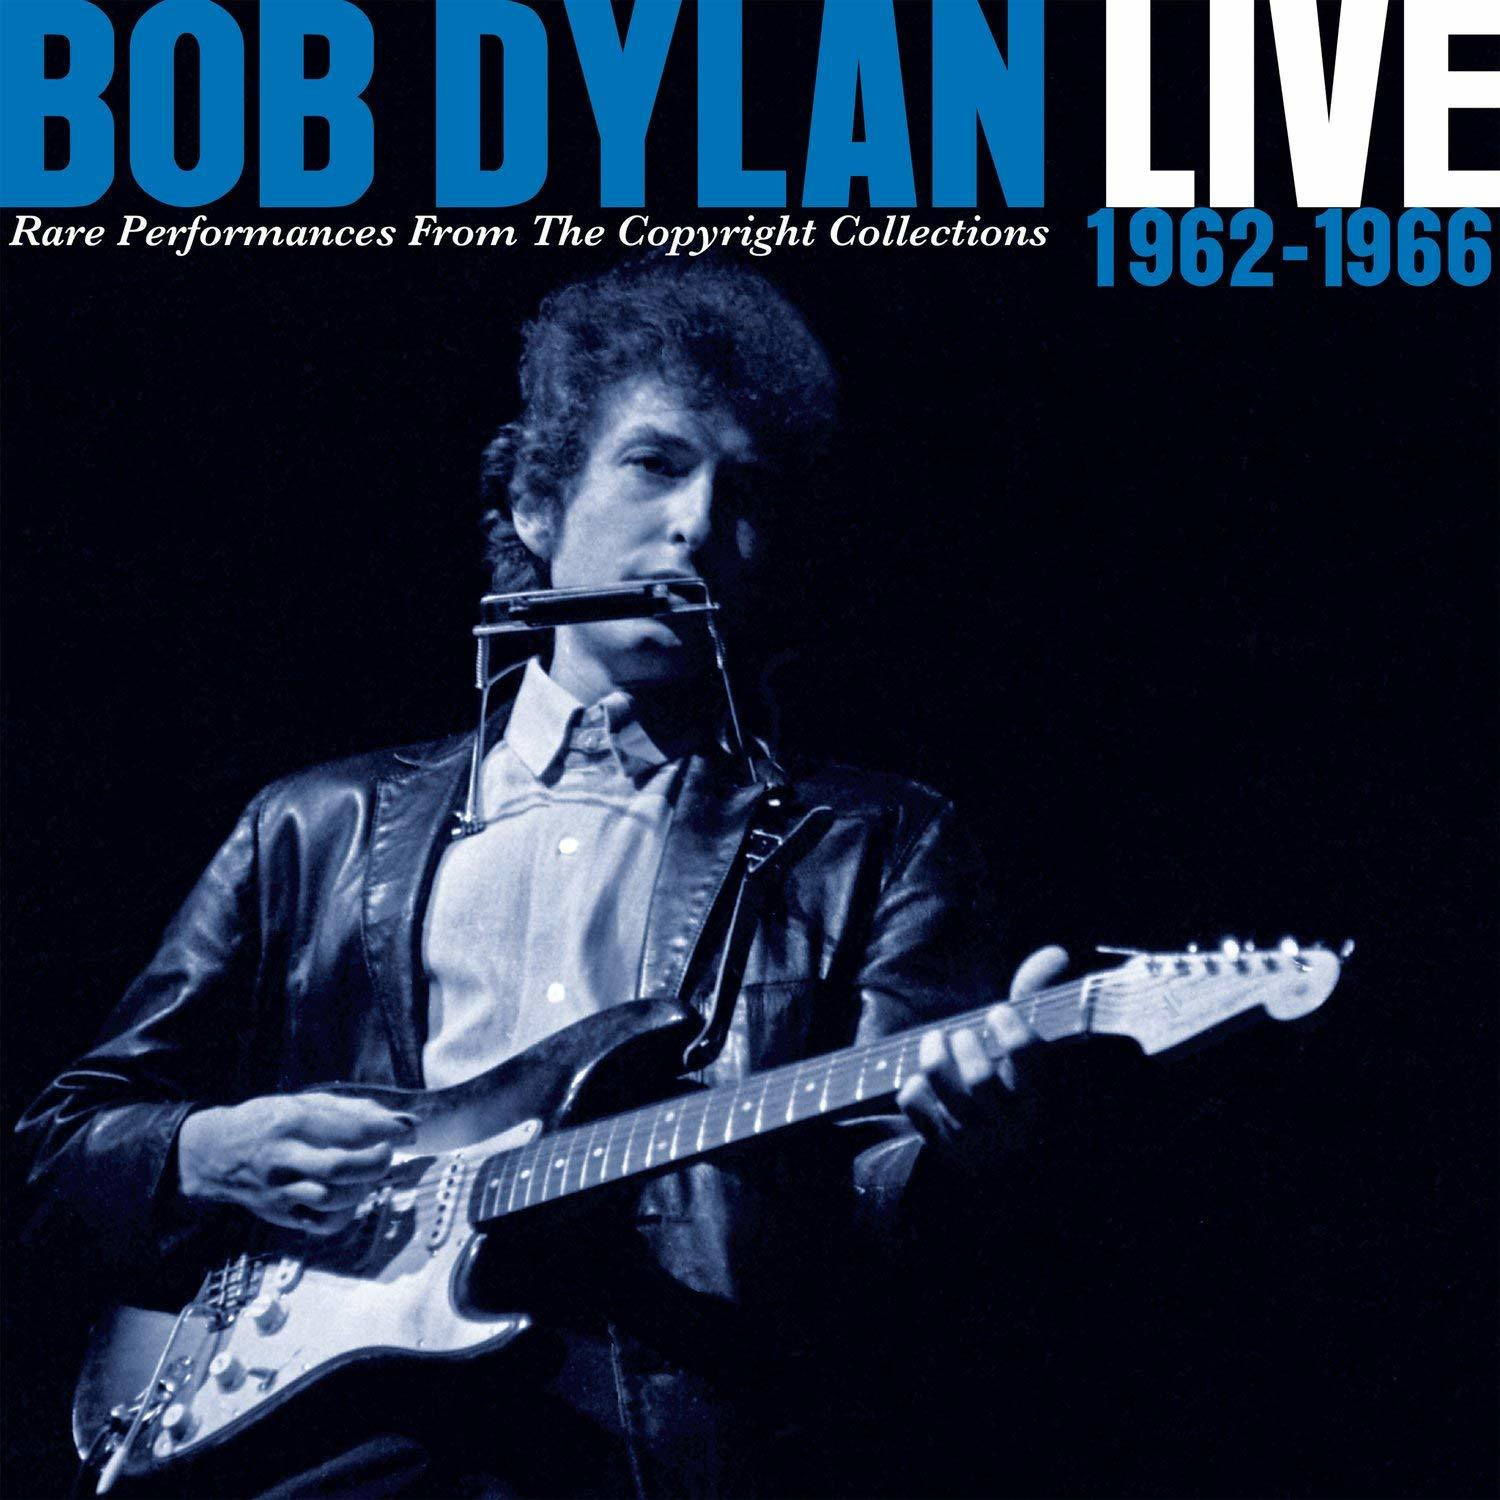 Live 1962 - 1966 - Rare Performances From The Copyright Collections by Bob Dylan image